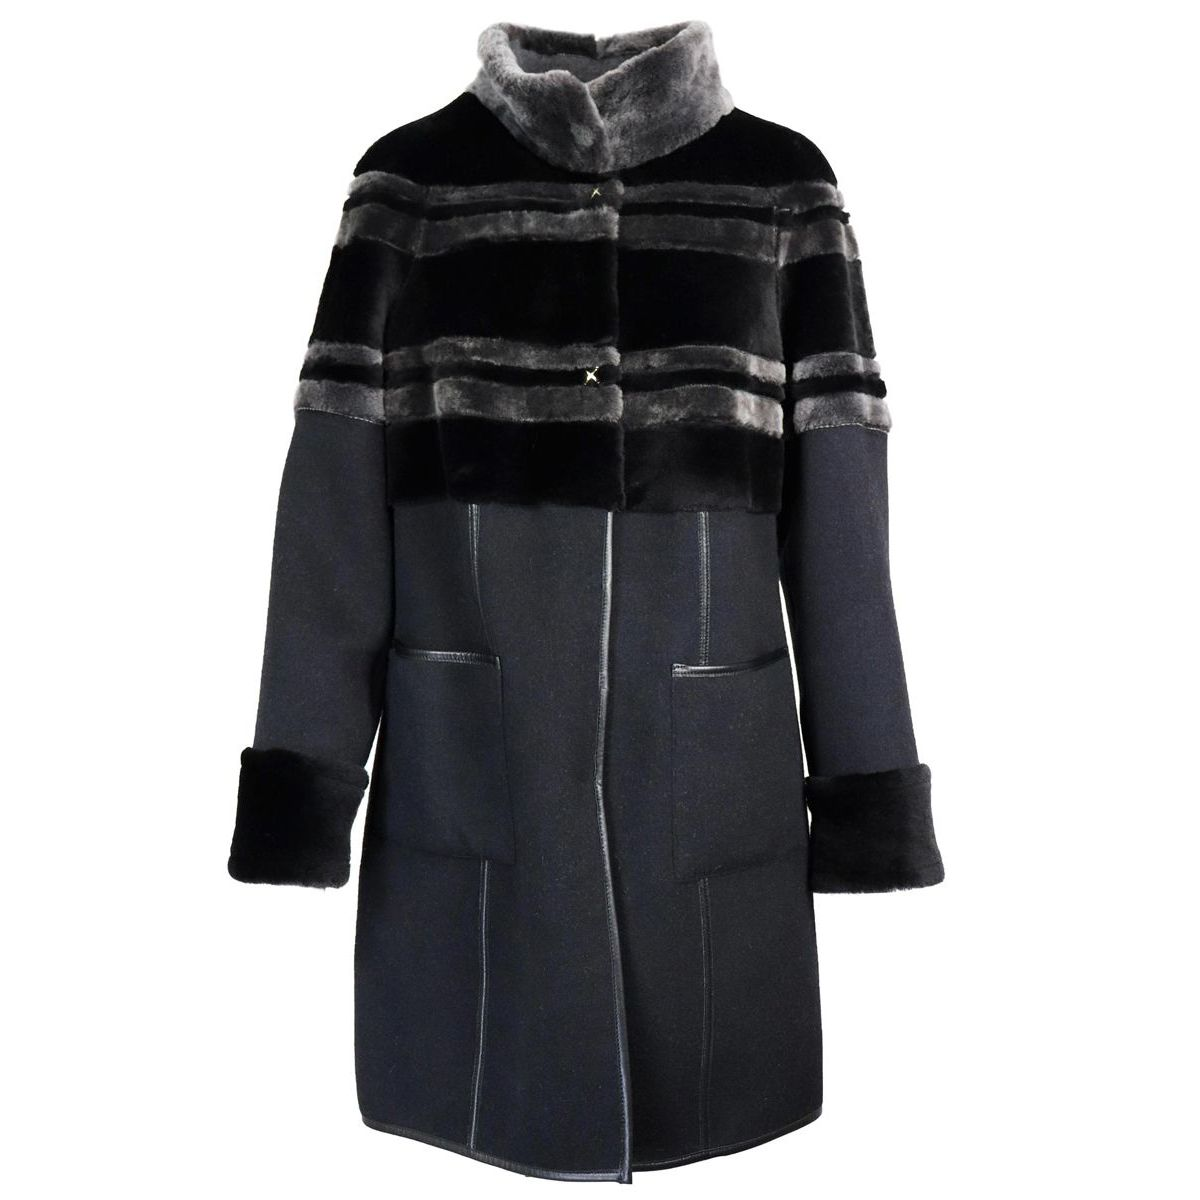 Long coat in cashmere and wool with reversible shearling inserts Black Marester